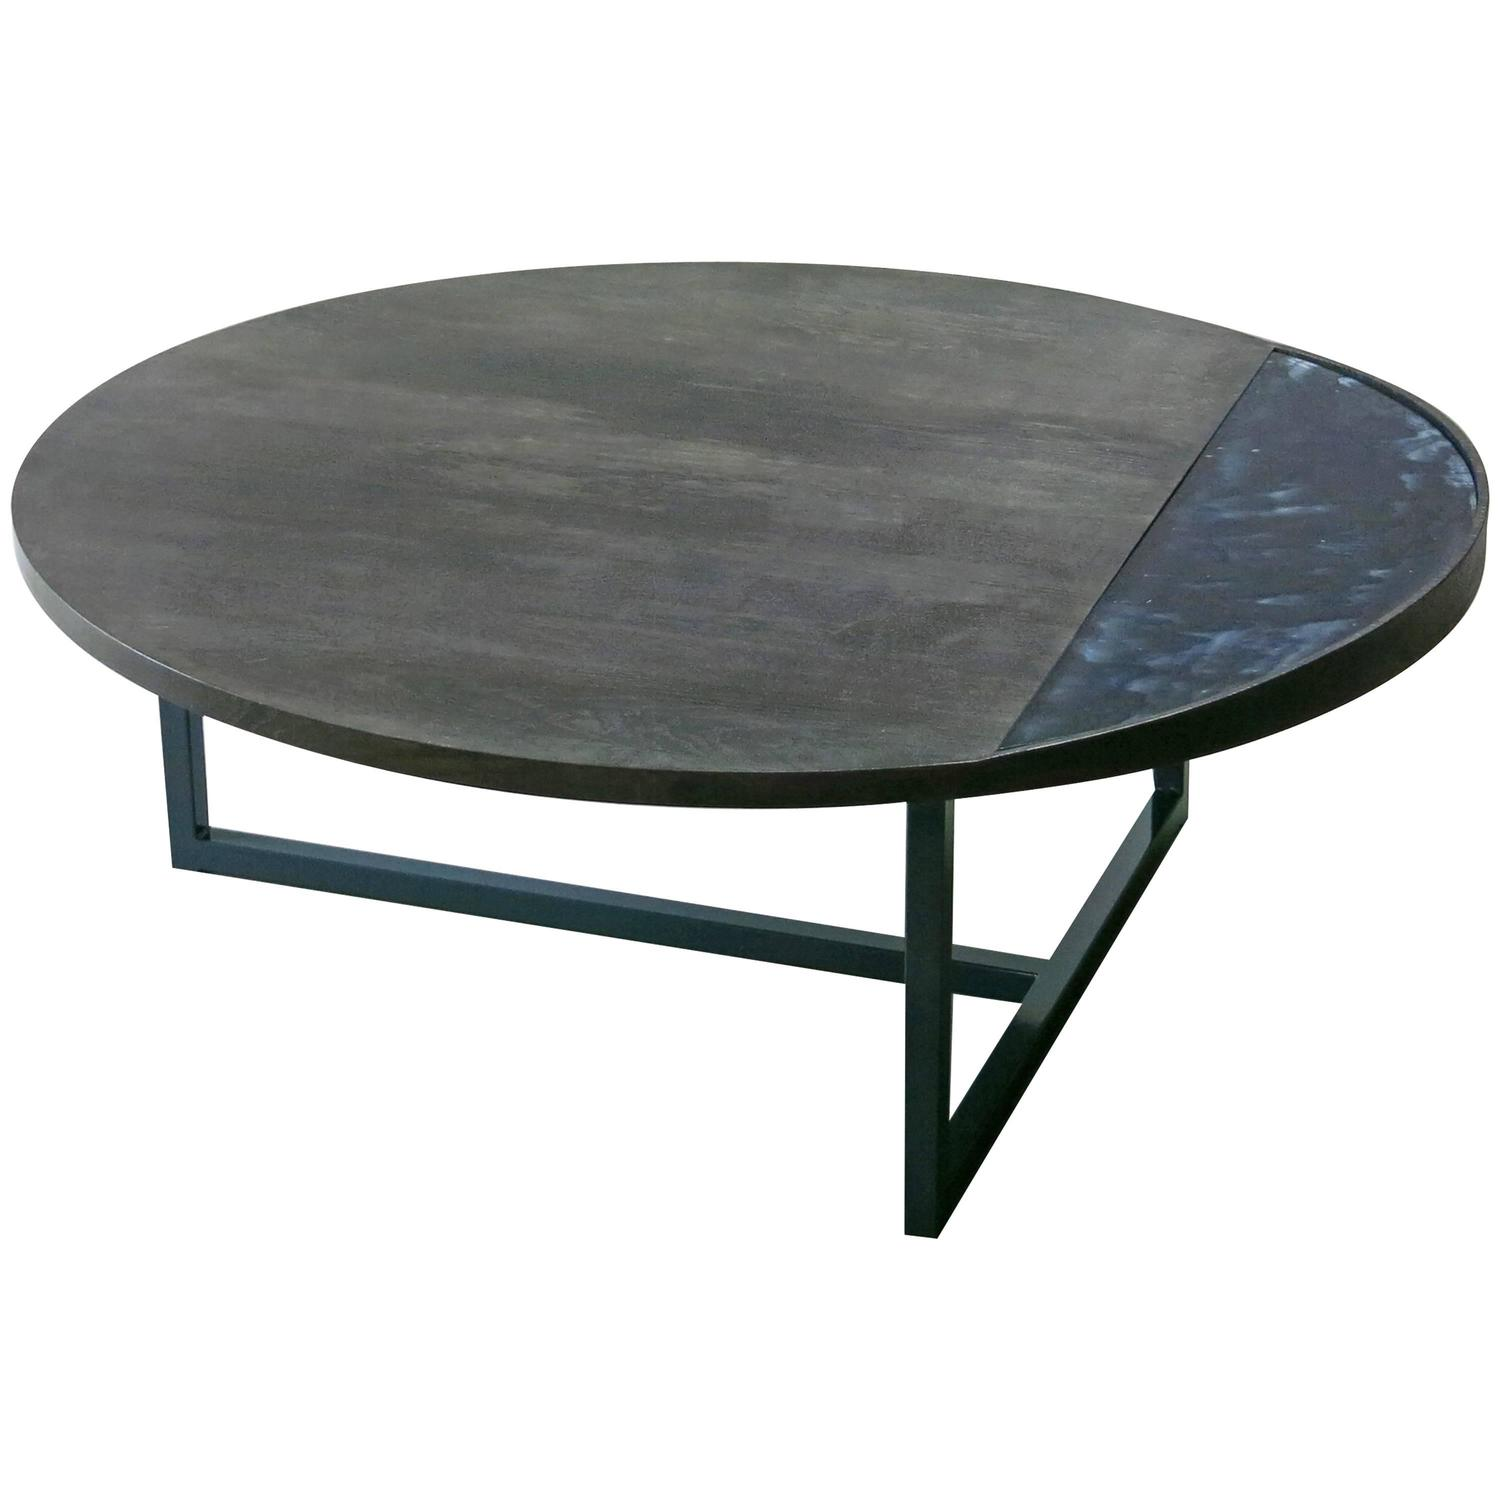 Unique Mathilde Pellee Coffee Table 39 Abords 39 For Sale At 1stdibs